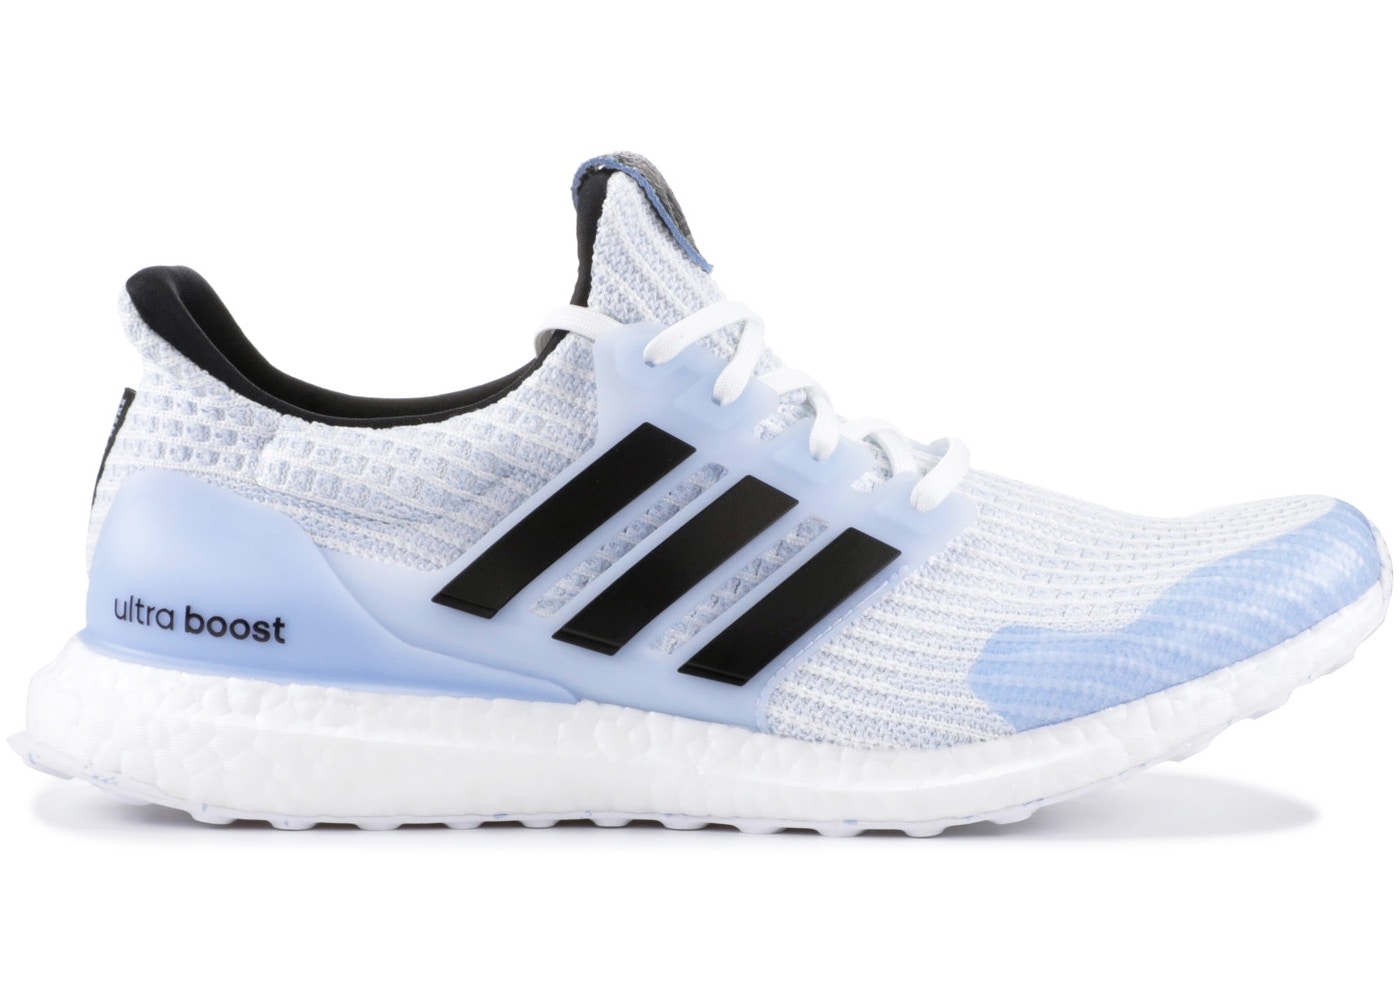 0f92037d0a3f2 adidas Ultra Boost 4.0 Game of Thrones White Walkers - EE3708